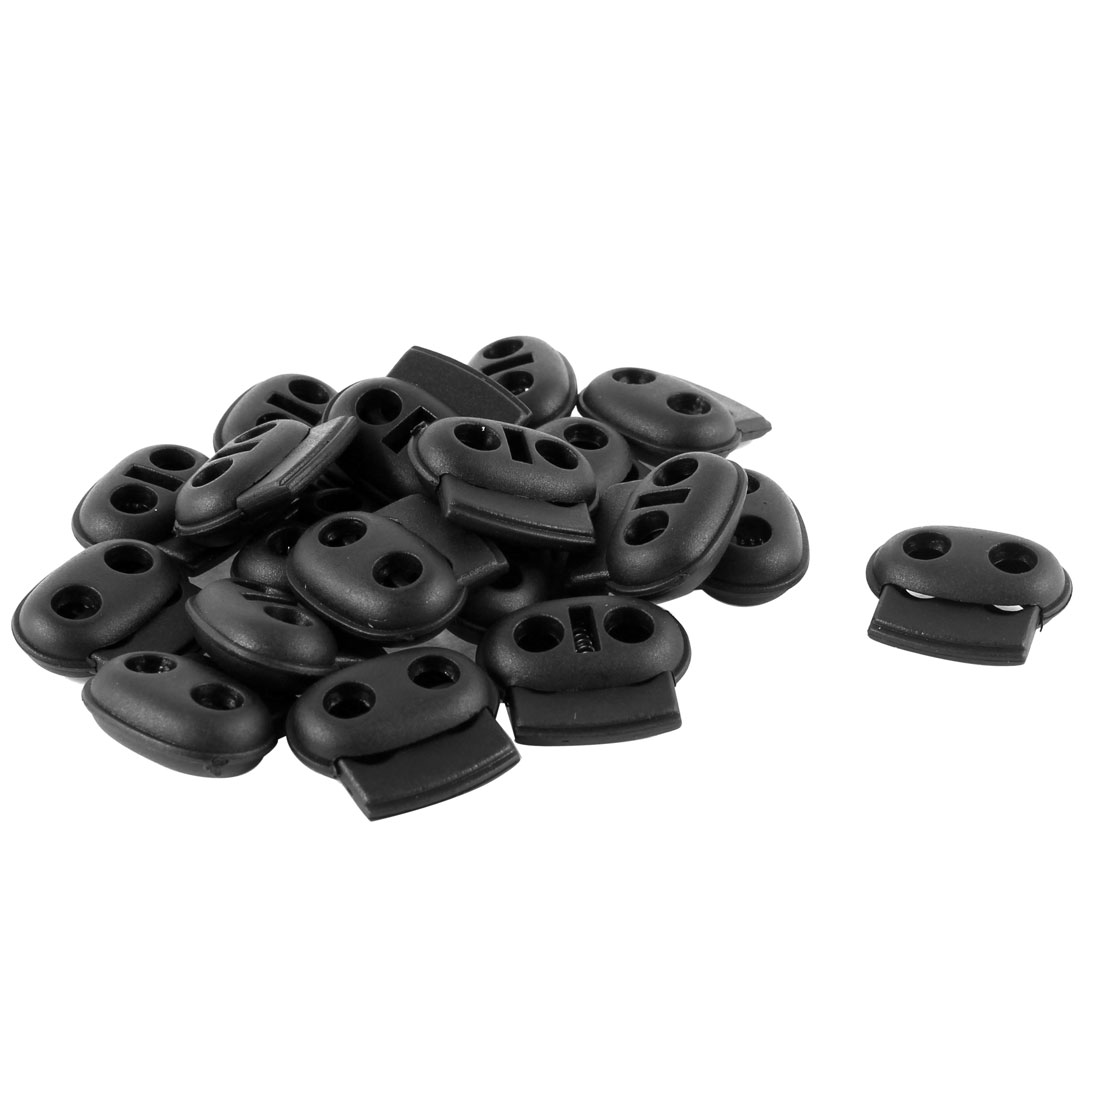 20PCS Plastic 5mm Double Hole Spring Stopper Bean Cord Locks Ends